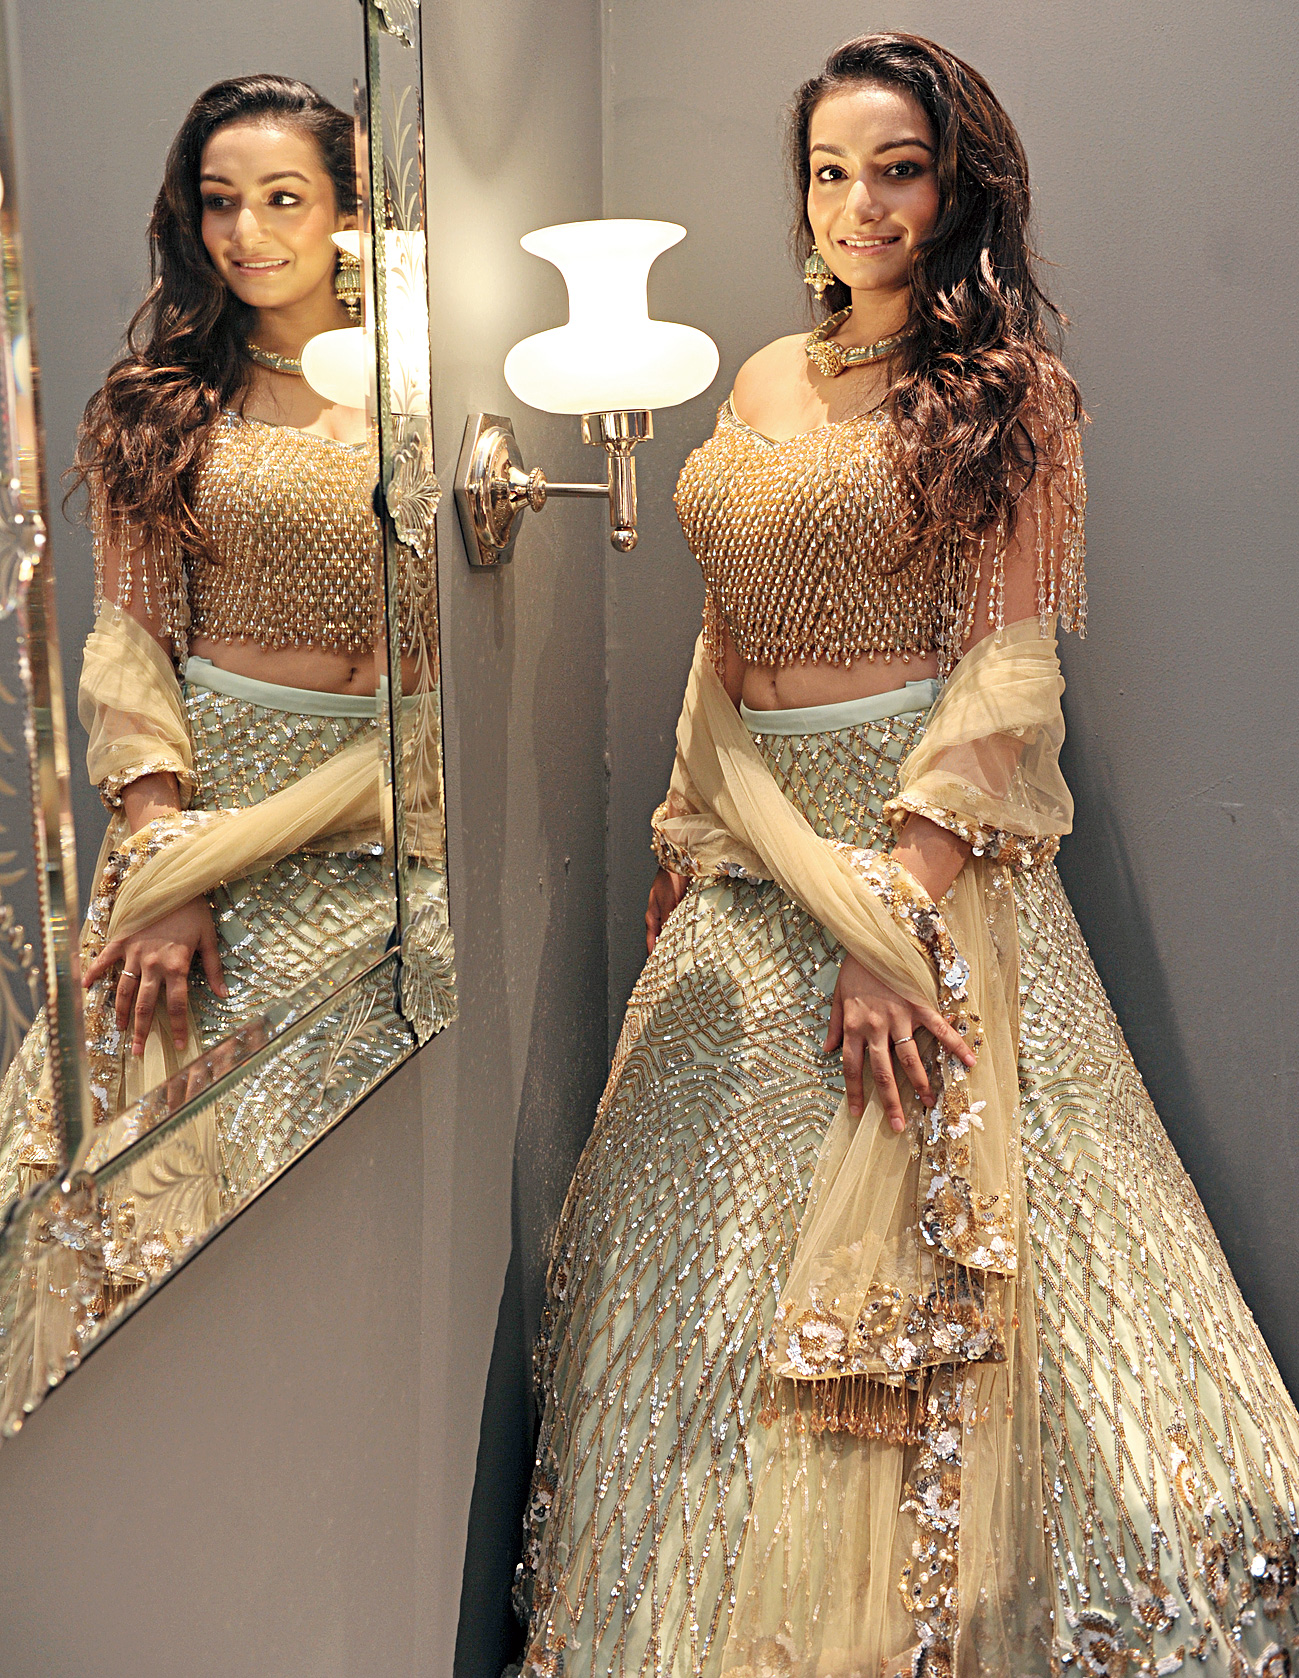 """Paris Cafe owner Sneha Singhi stepped into a Suneet Varma lehnga paired with jewellery from Birdhichand Ghanshyamdas and """"loved having all eyes"""" on her. """"It was out of a fairy tale. Suneet Varma is the sweetest. He was so kind, he helped me walk around in those high heels. And to my surprise, he put my picture as his Instagram story!"""" said the pretty girl."""